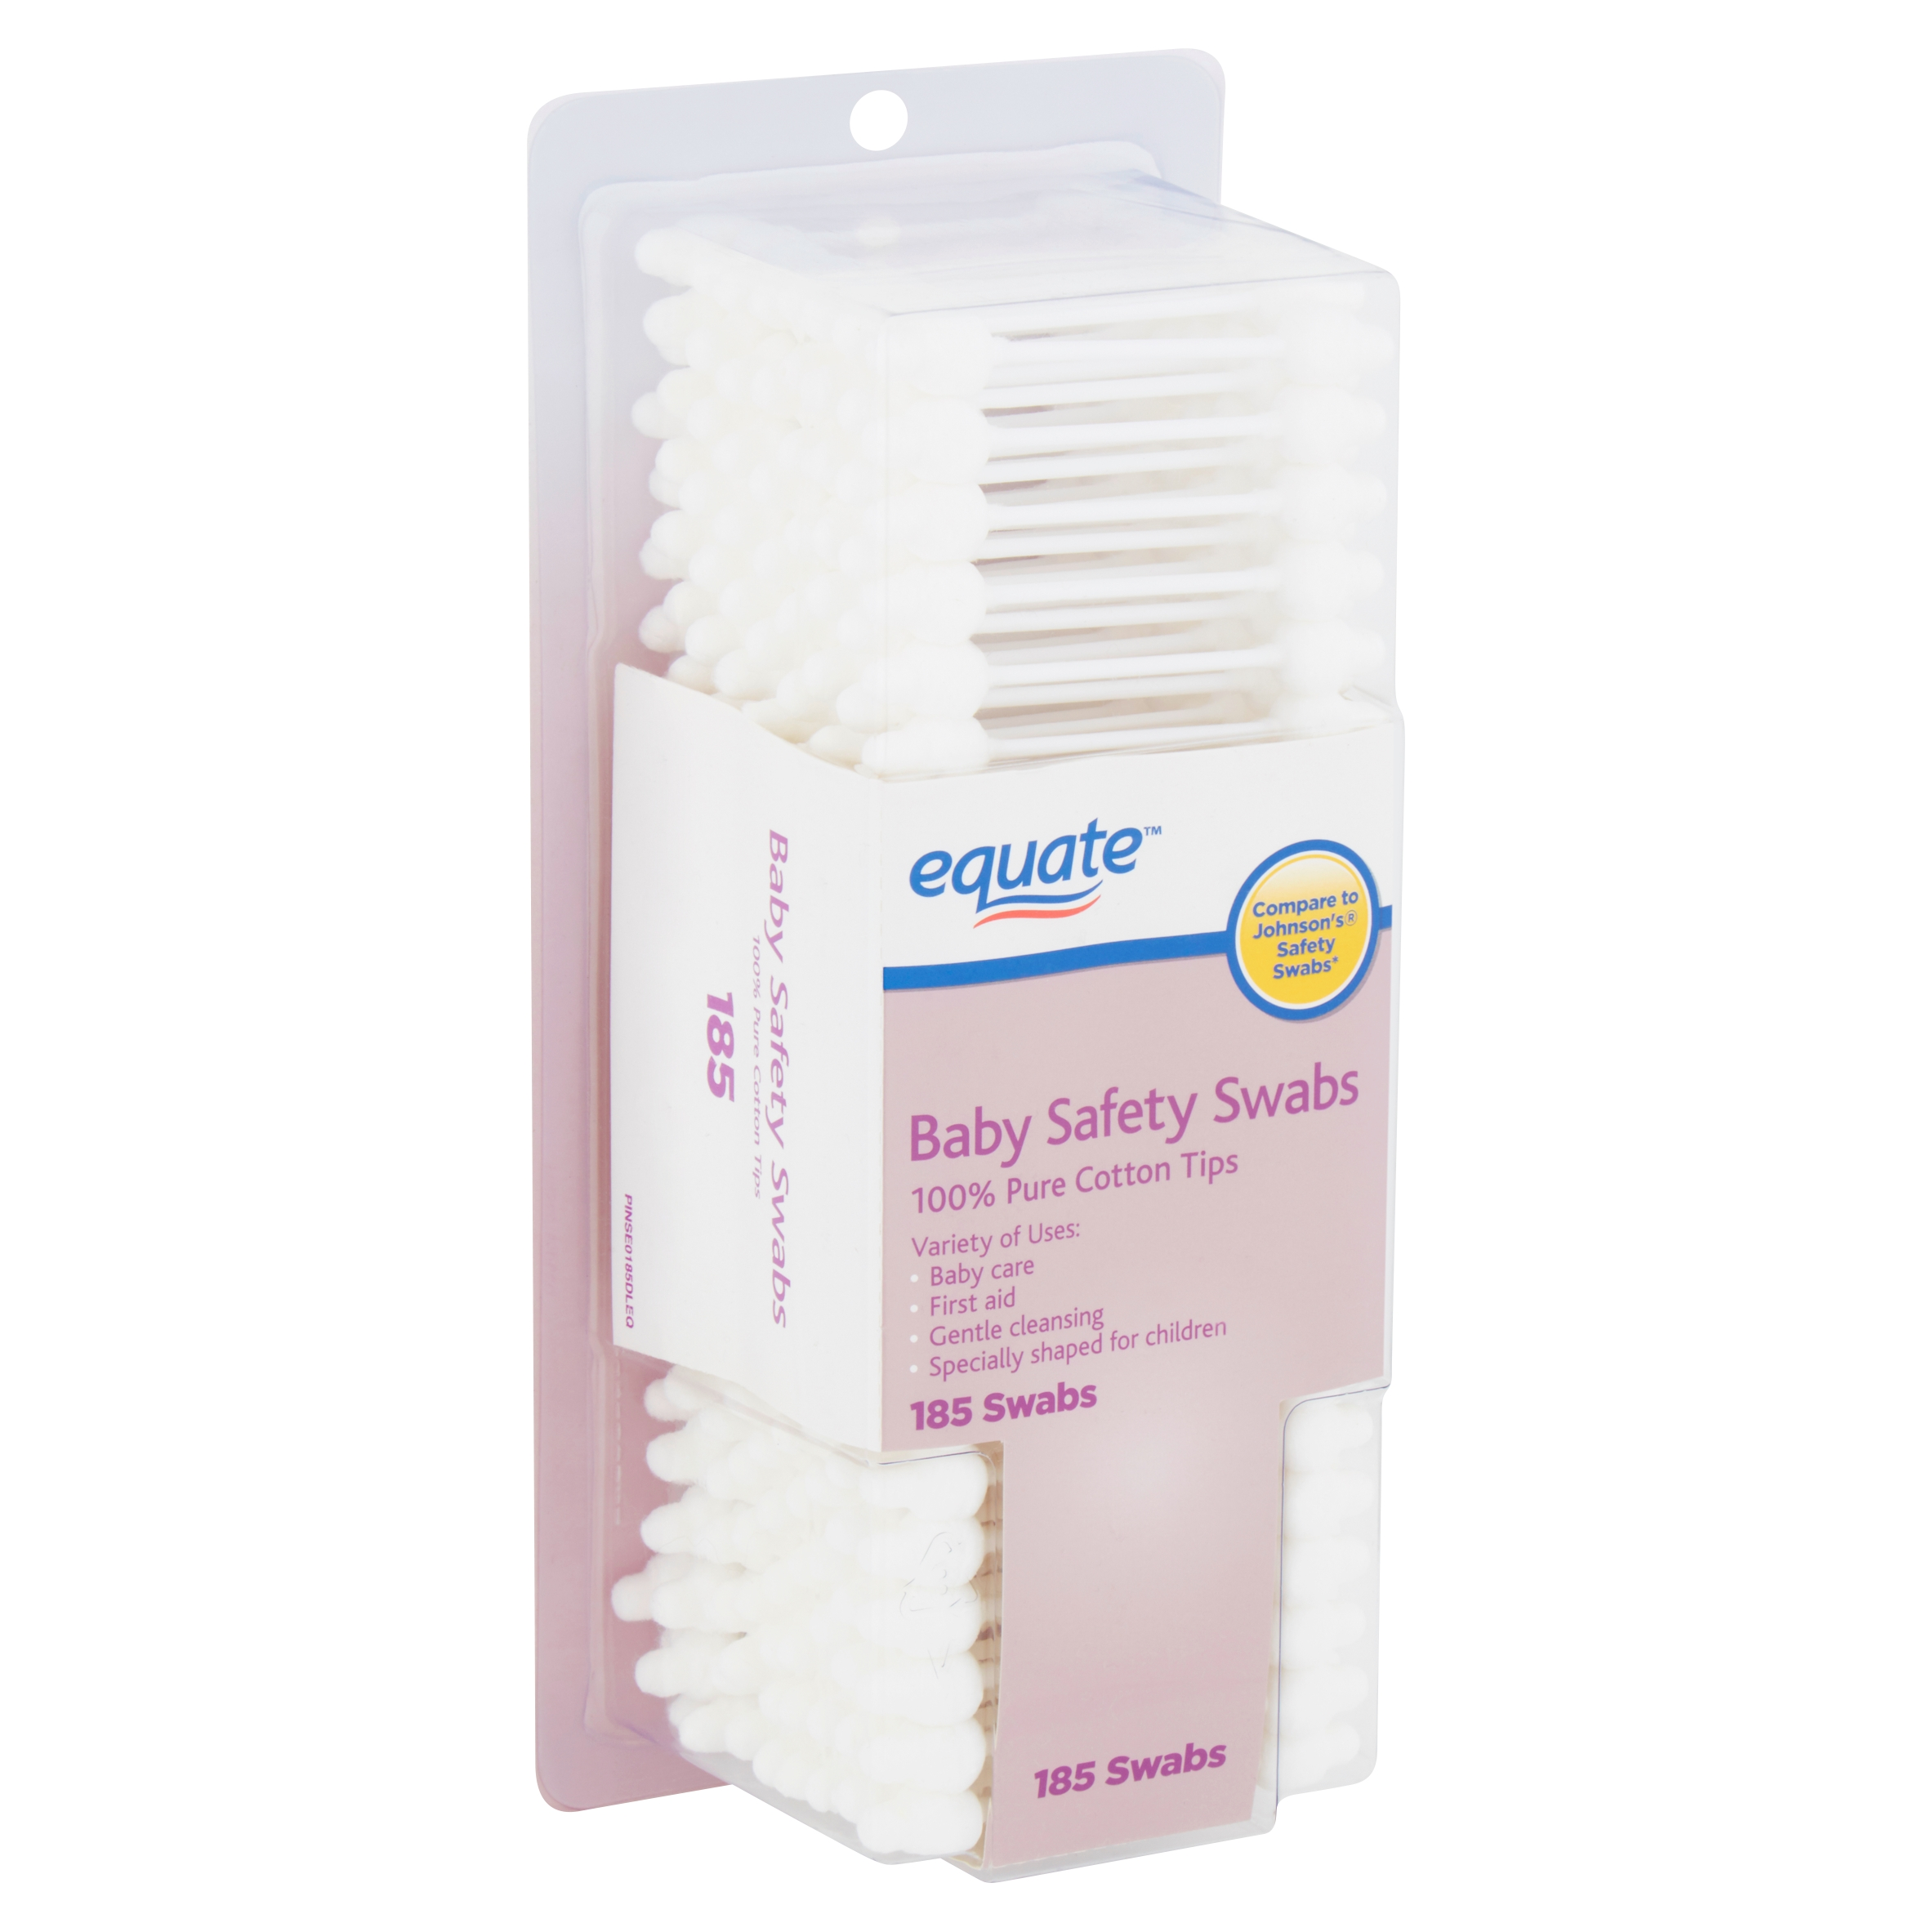 Equate Baby Safety Swabs, 185 count